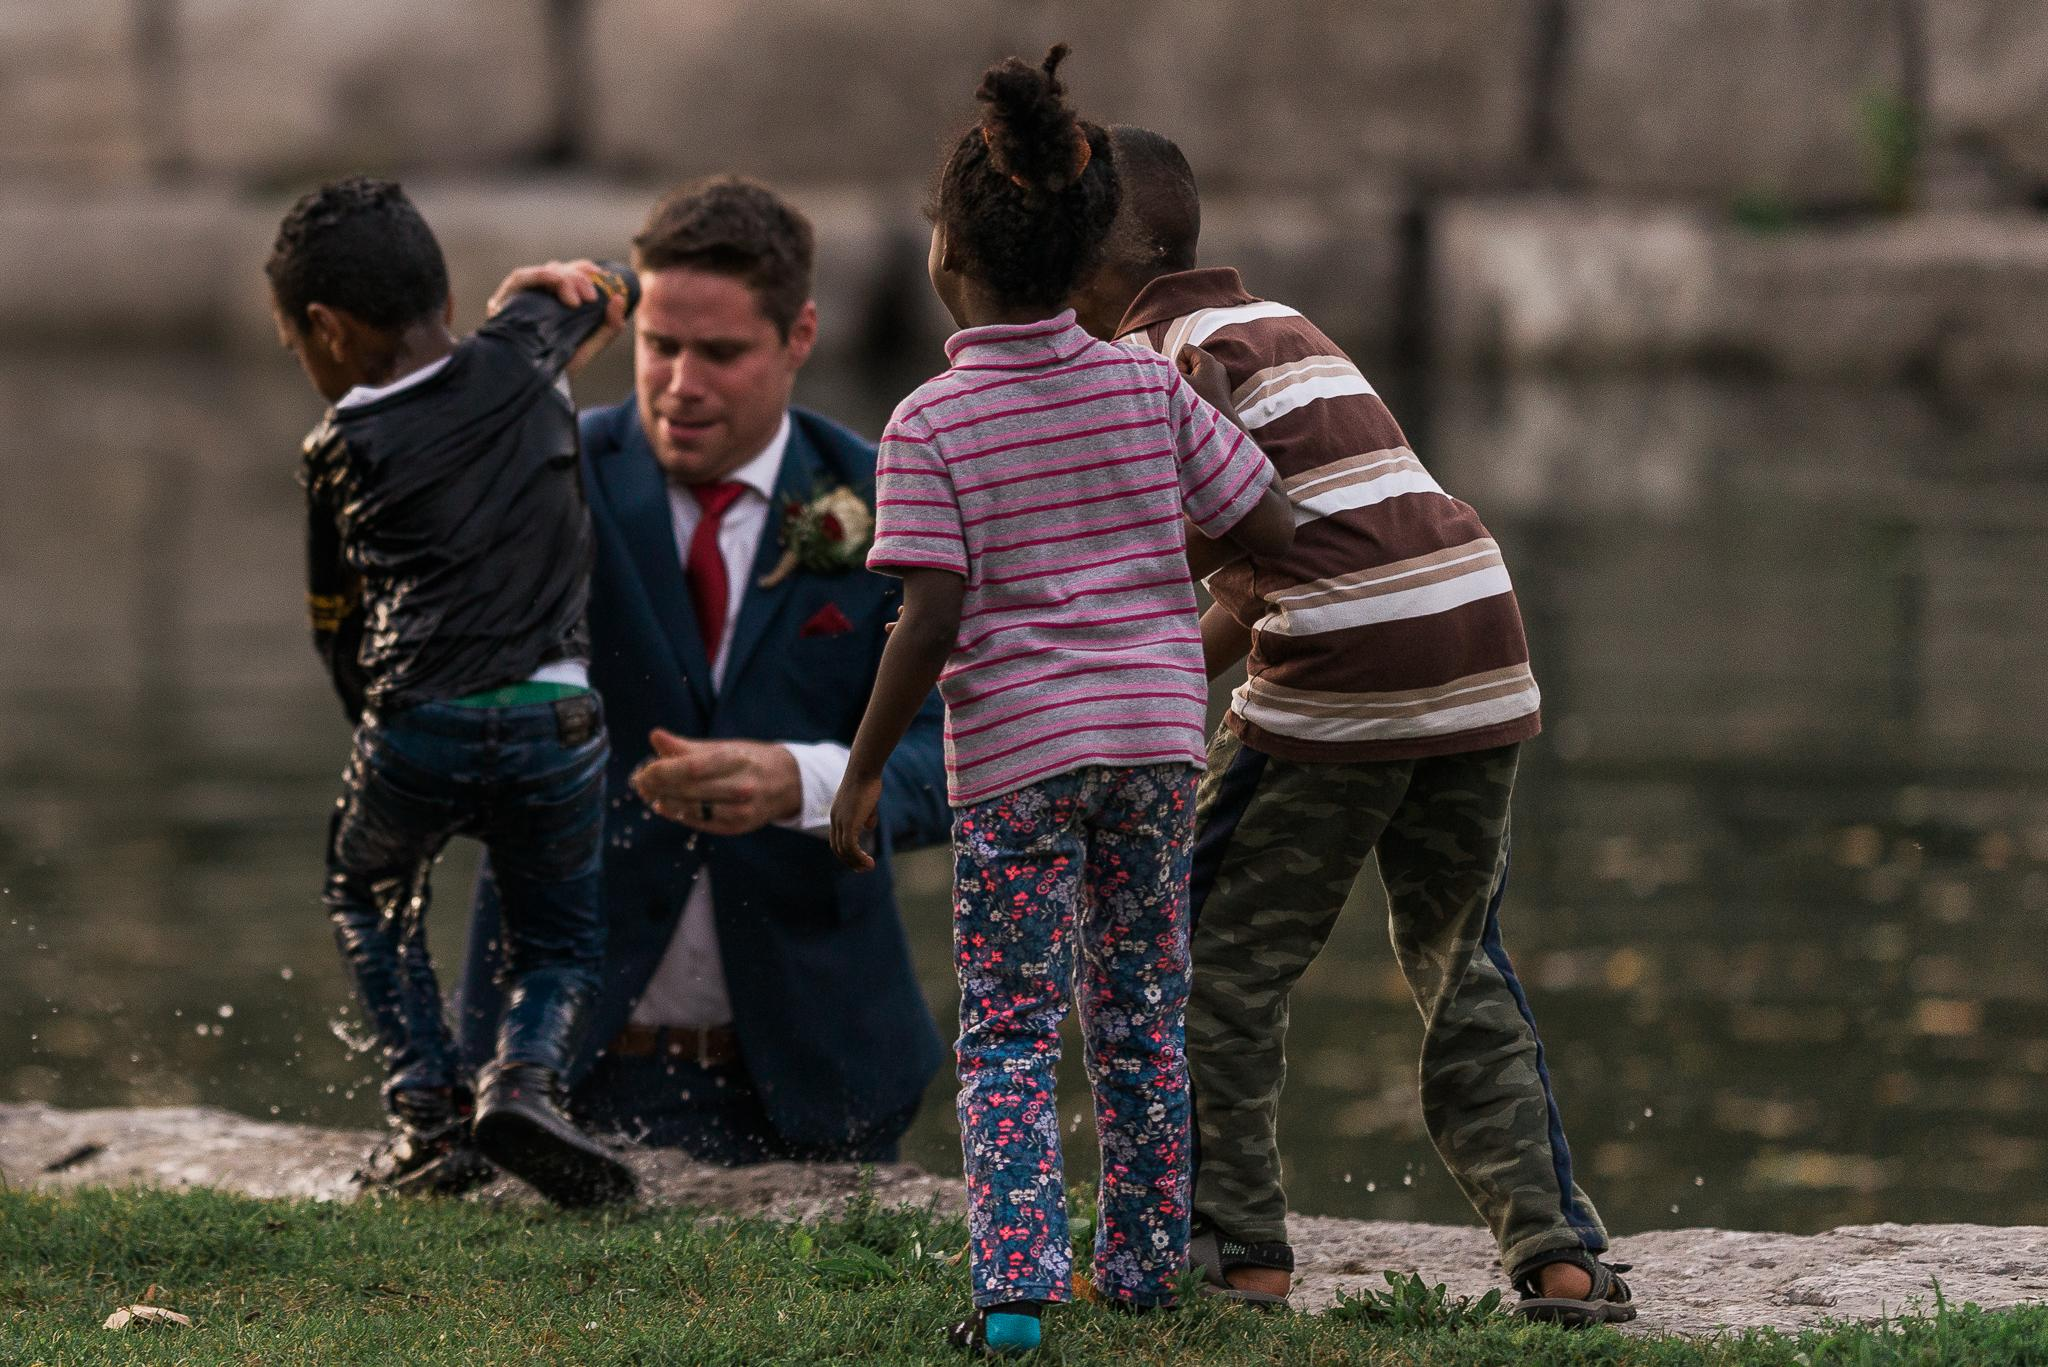 'He didn't hesitate for a moment': Hero groom saves drowning boy during wedding photo shoot